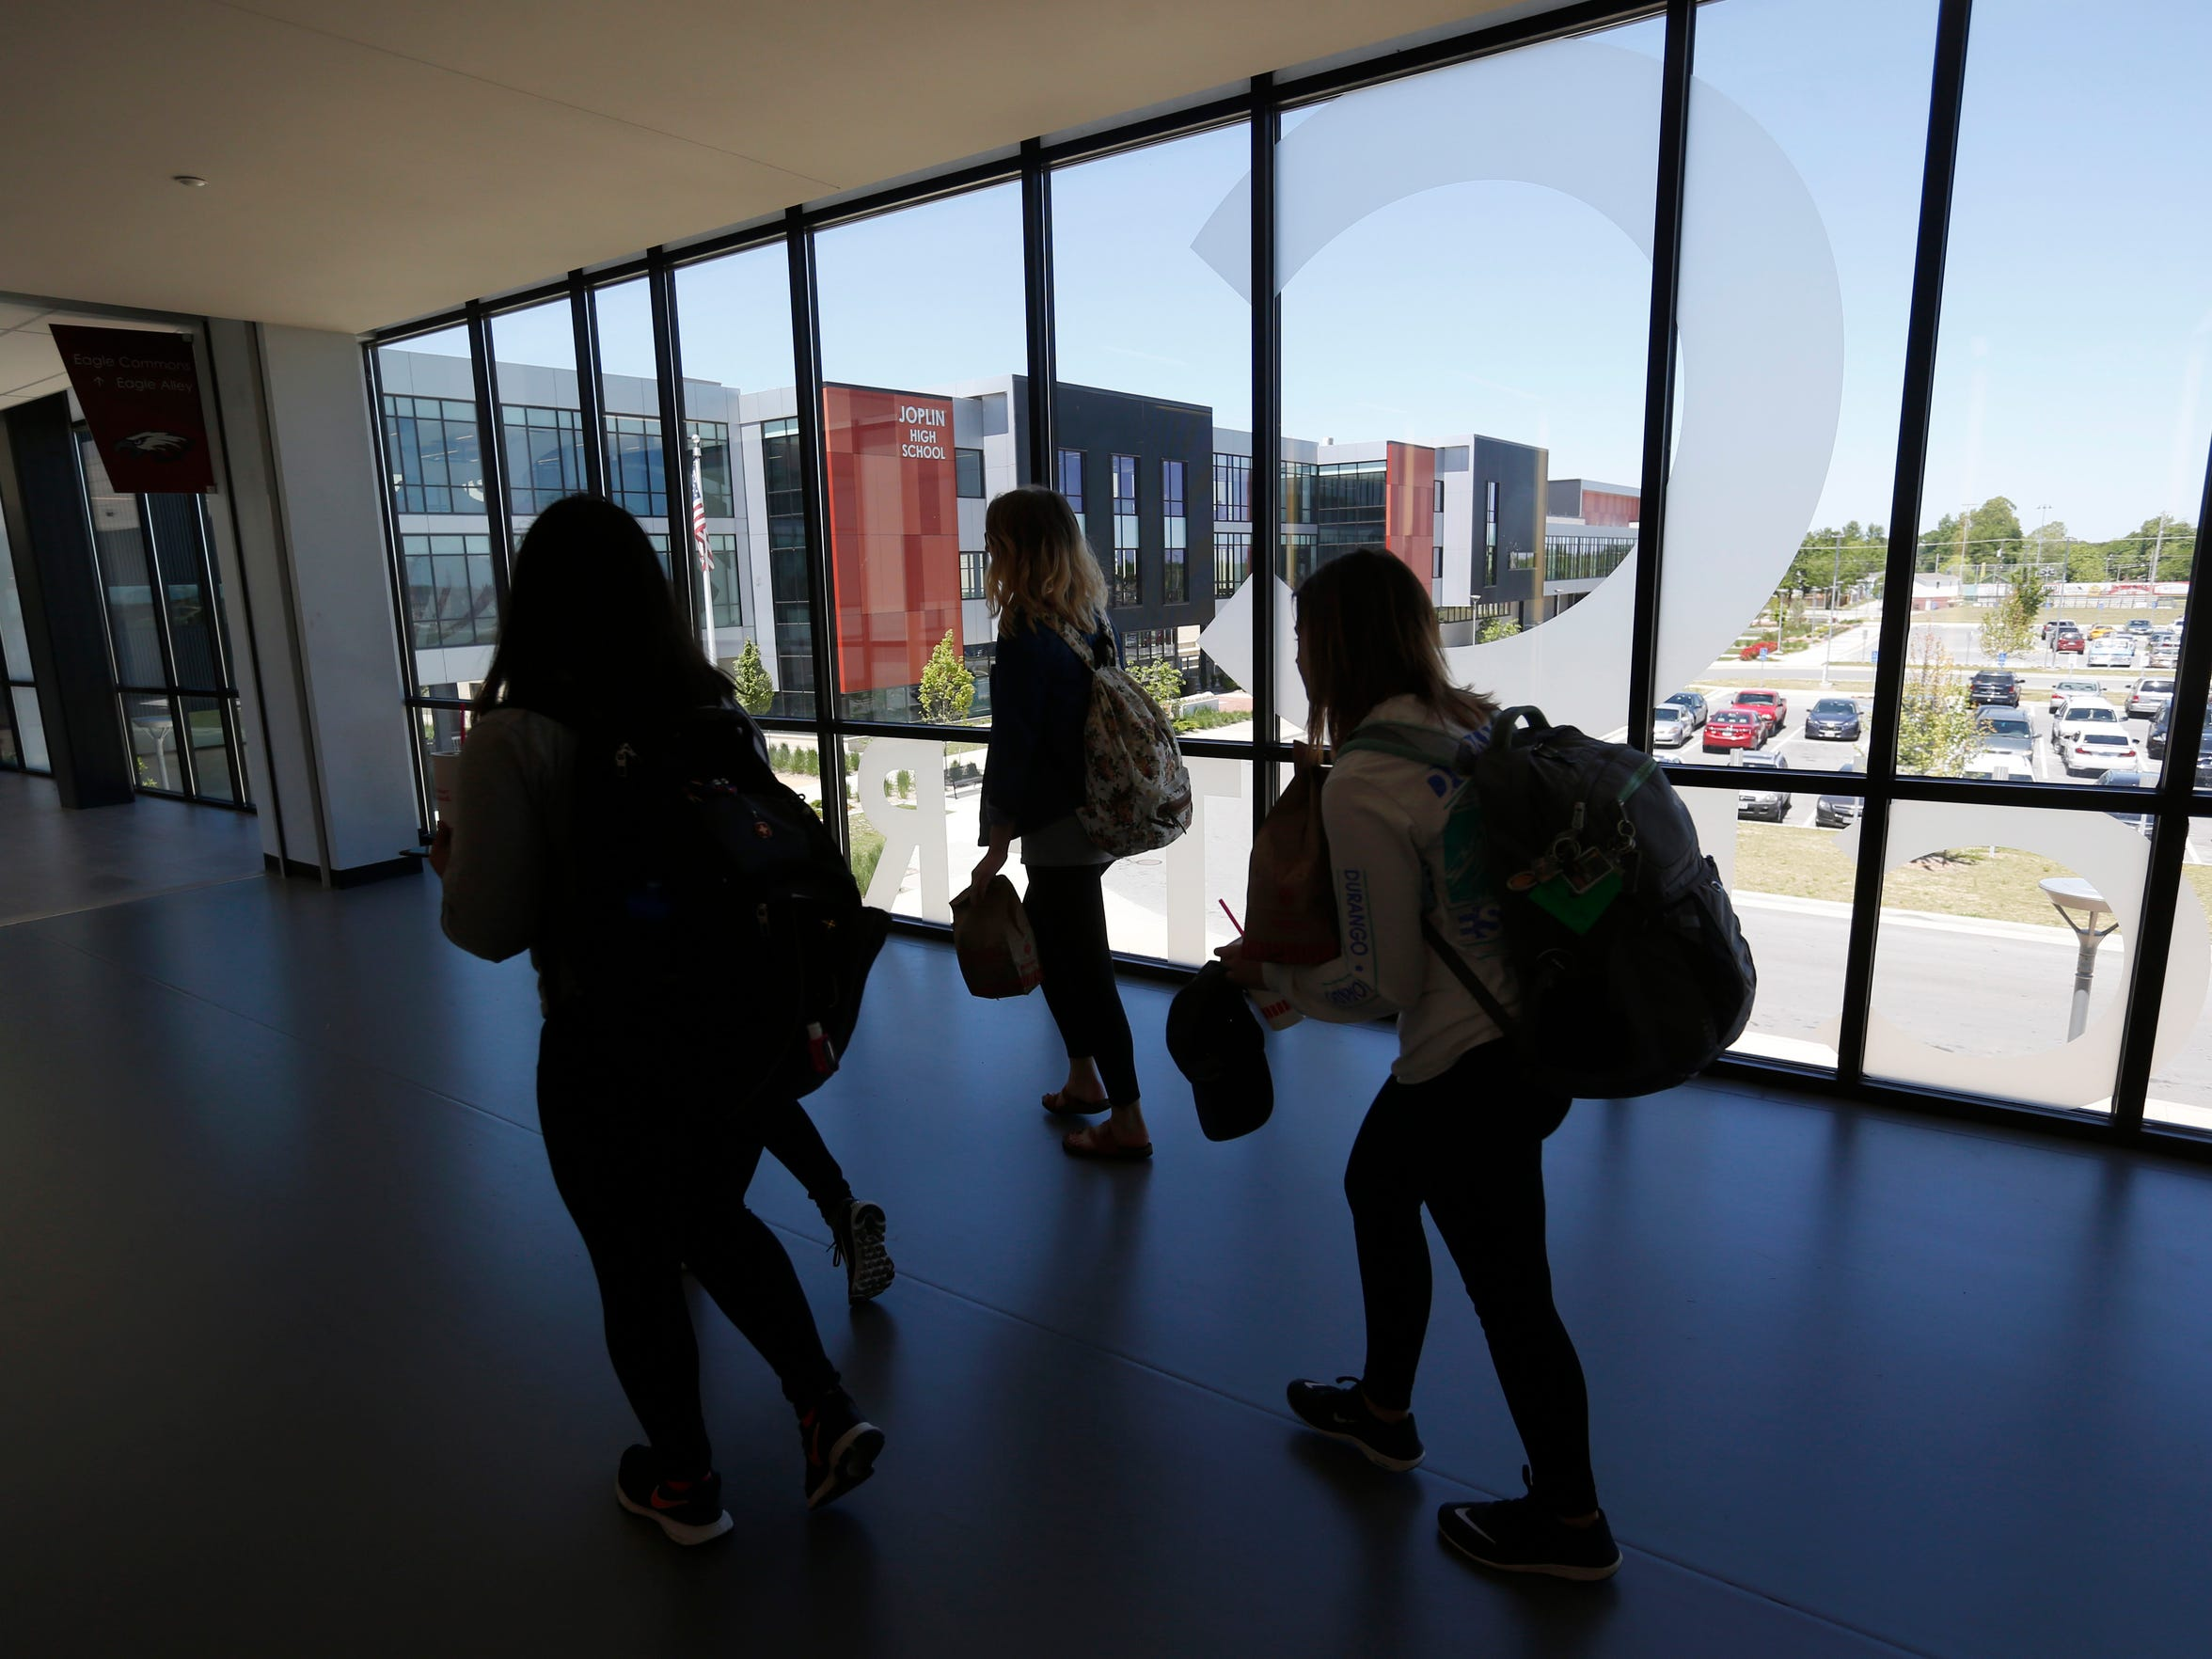 Students walk to class down a concourse lined with